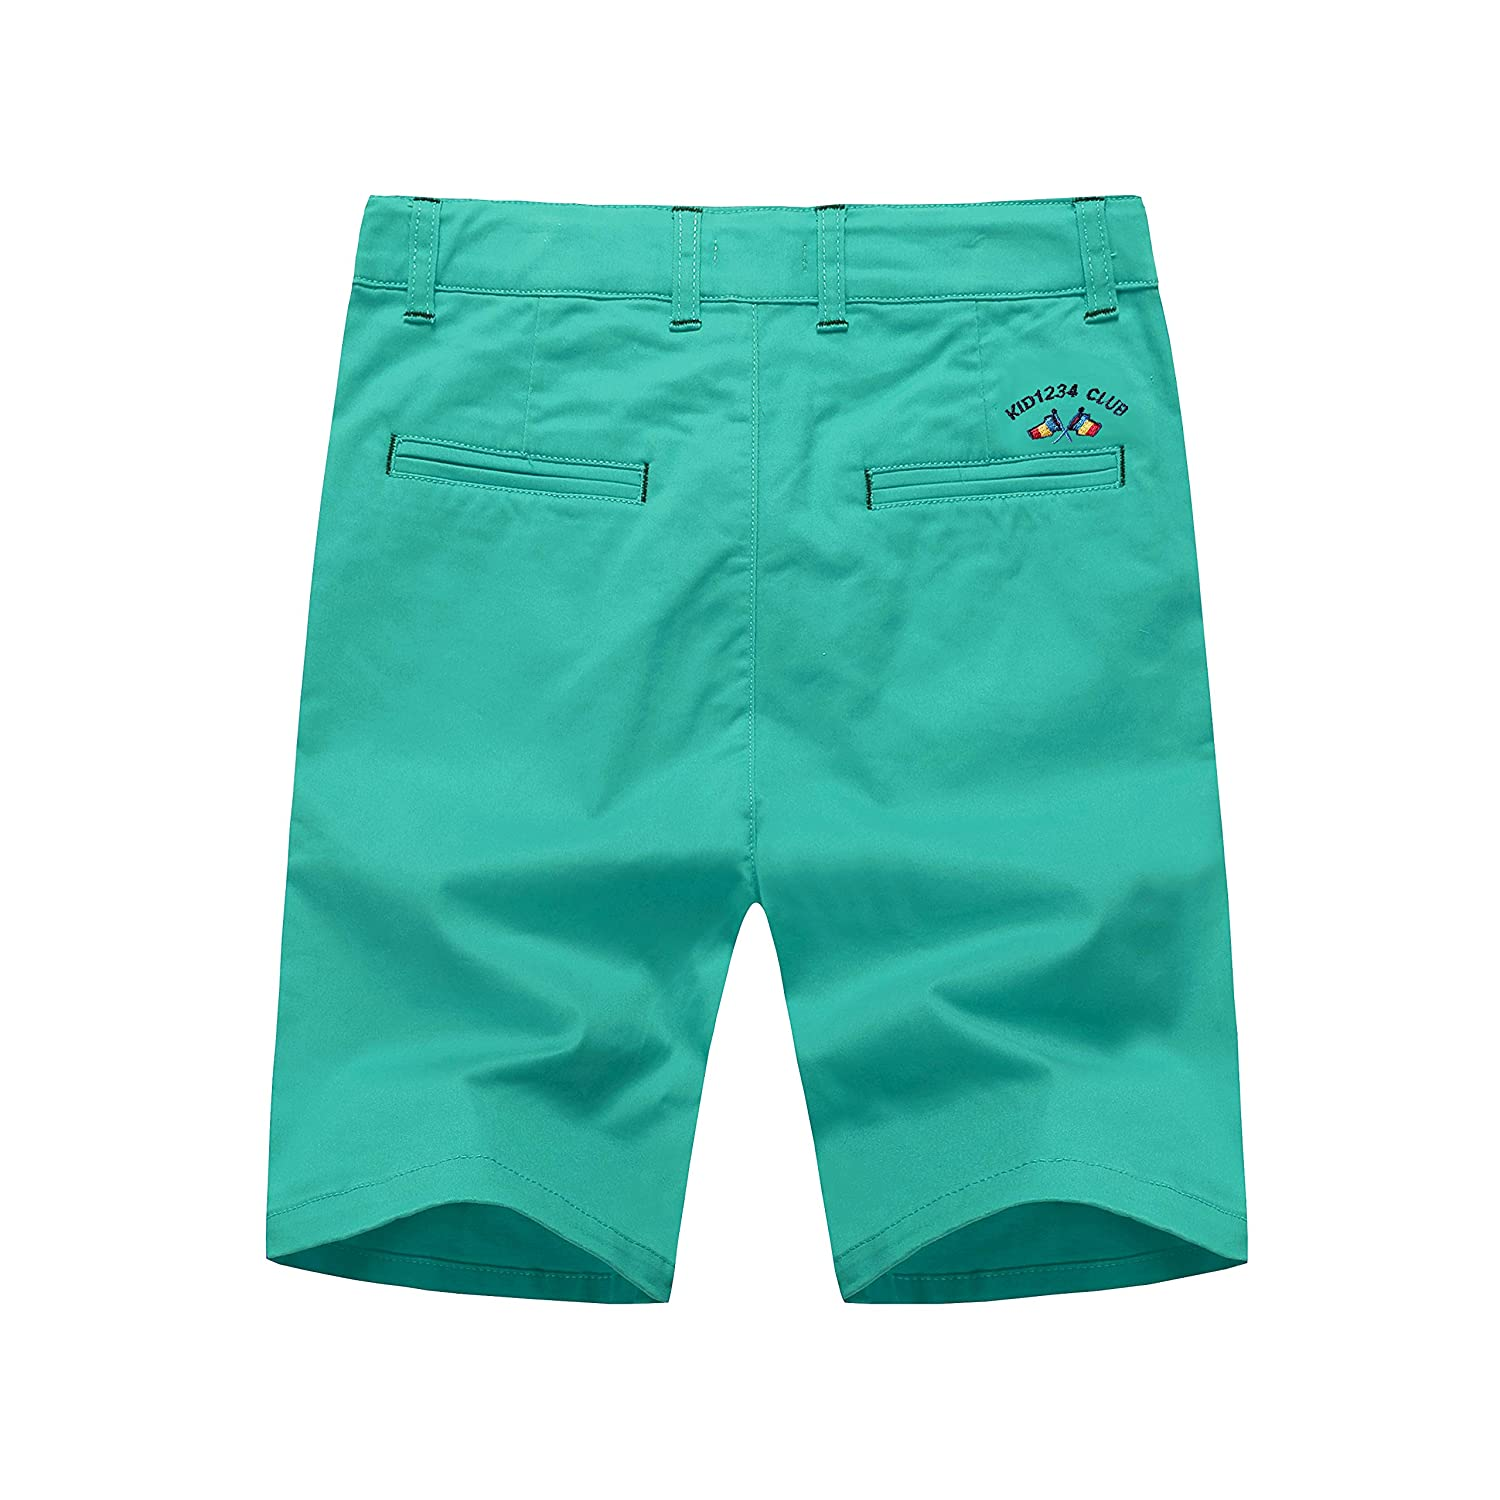 KID1234 Boys Shorts Summer Chino Cotton Shorts Fitted with Adjustable Waist Kids Clothes/…